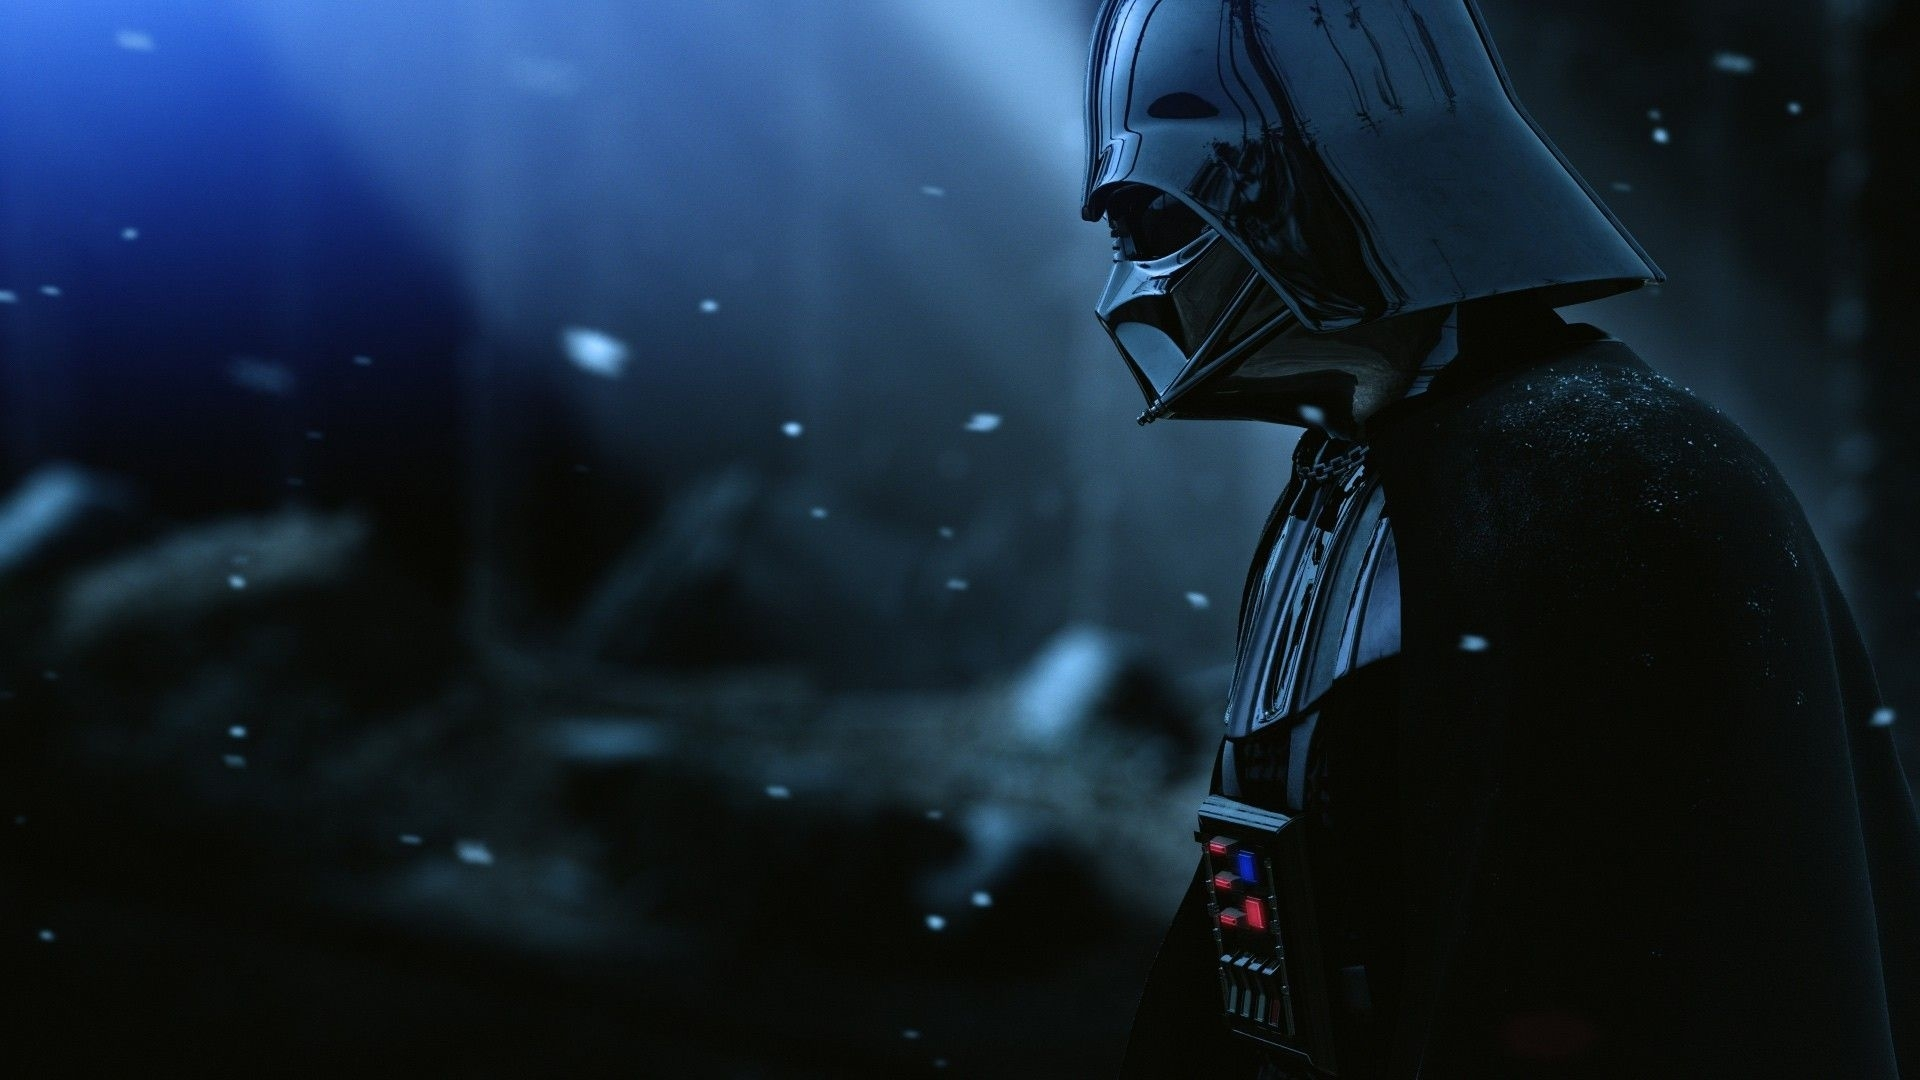 darth vader star wars in snow hd wallpaper » fullhdwpp - full hd